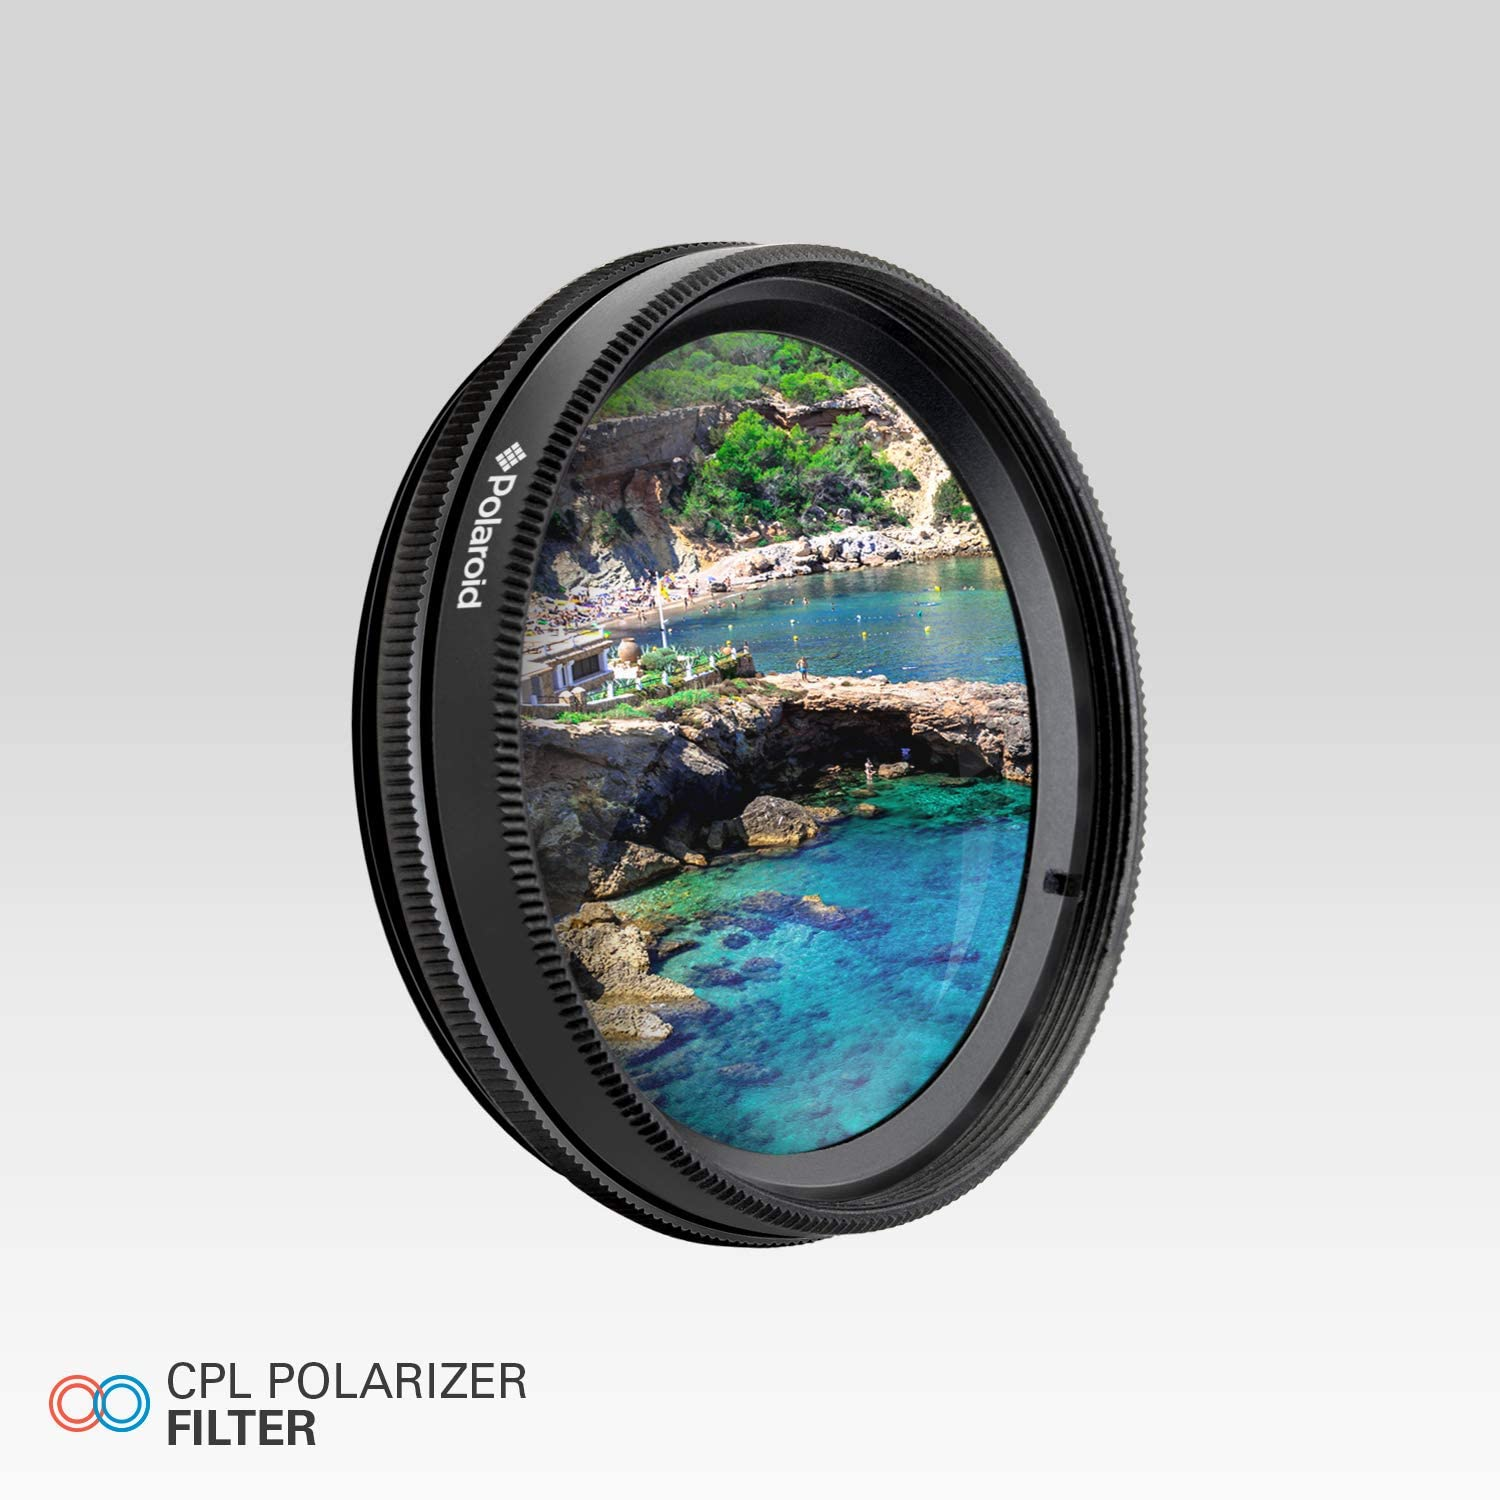 Multicoated Digital Nc C-PL Multithreaded Glass Filter Circular Polarizer for Sony Alpha DSLR-A500L 67mm